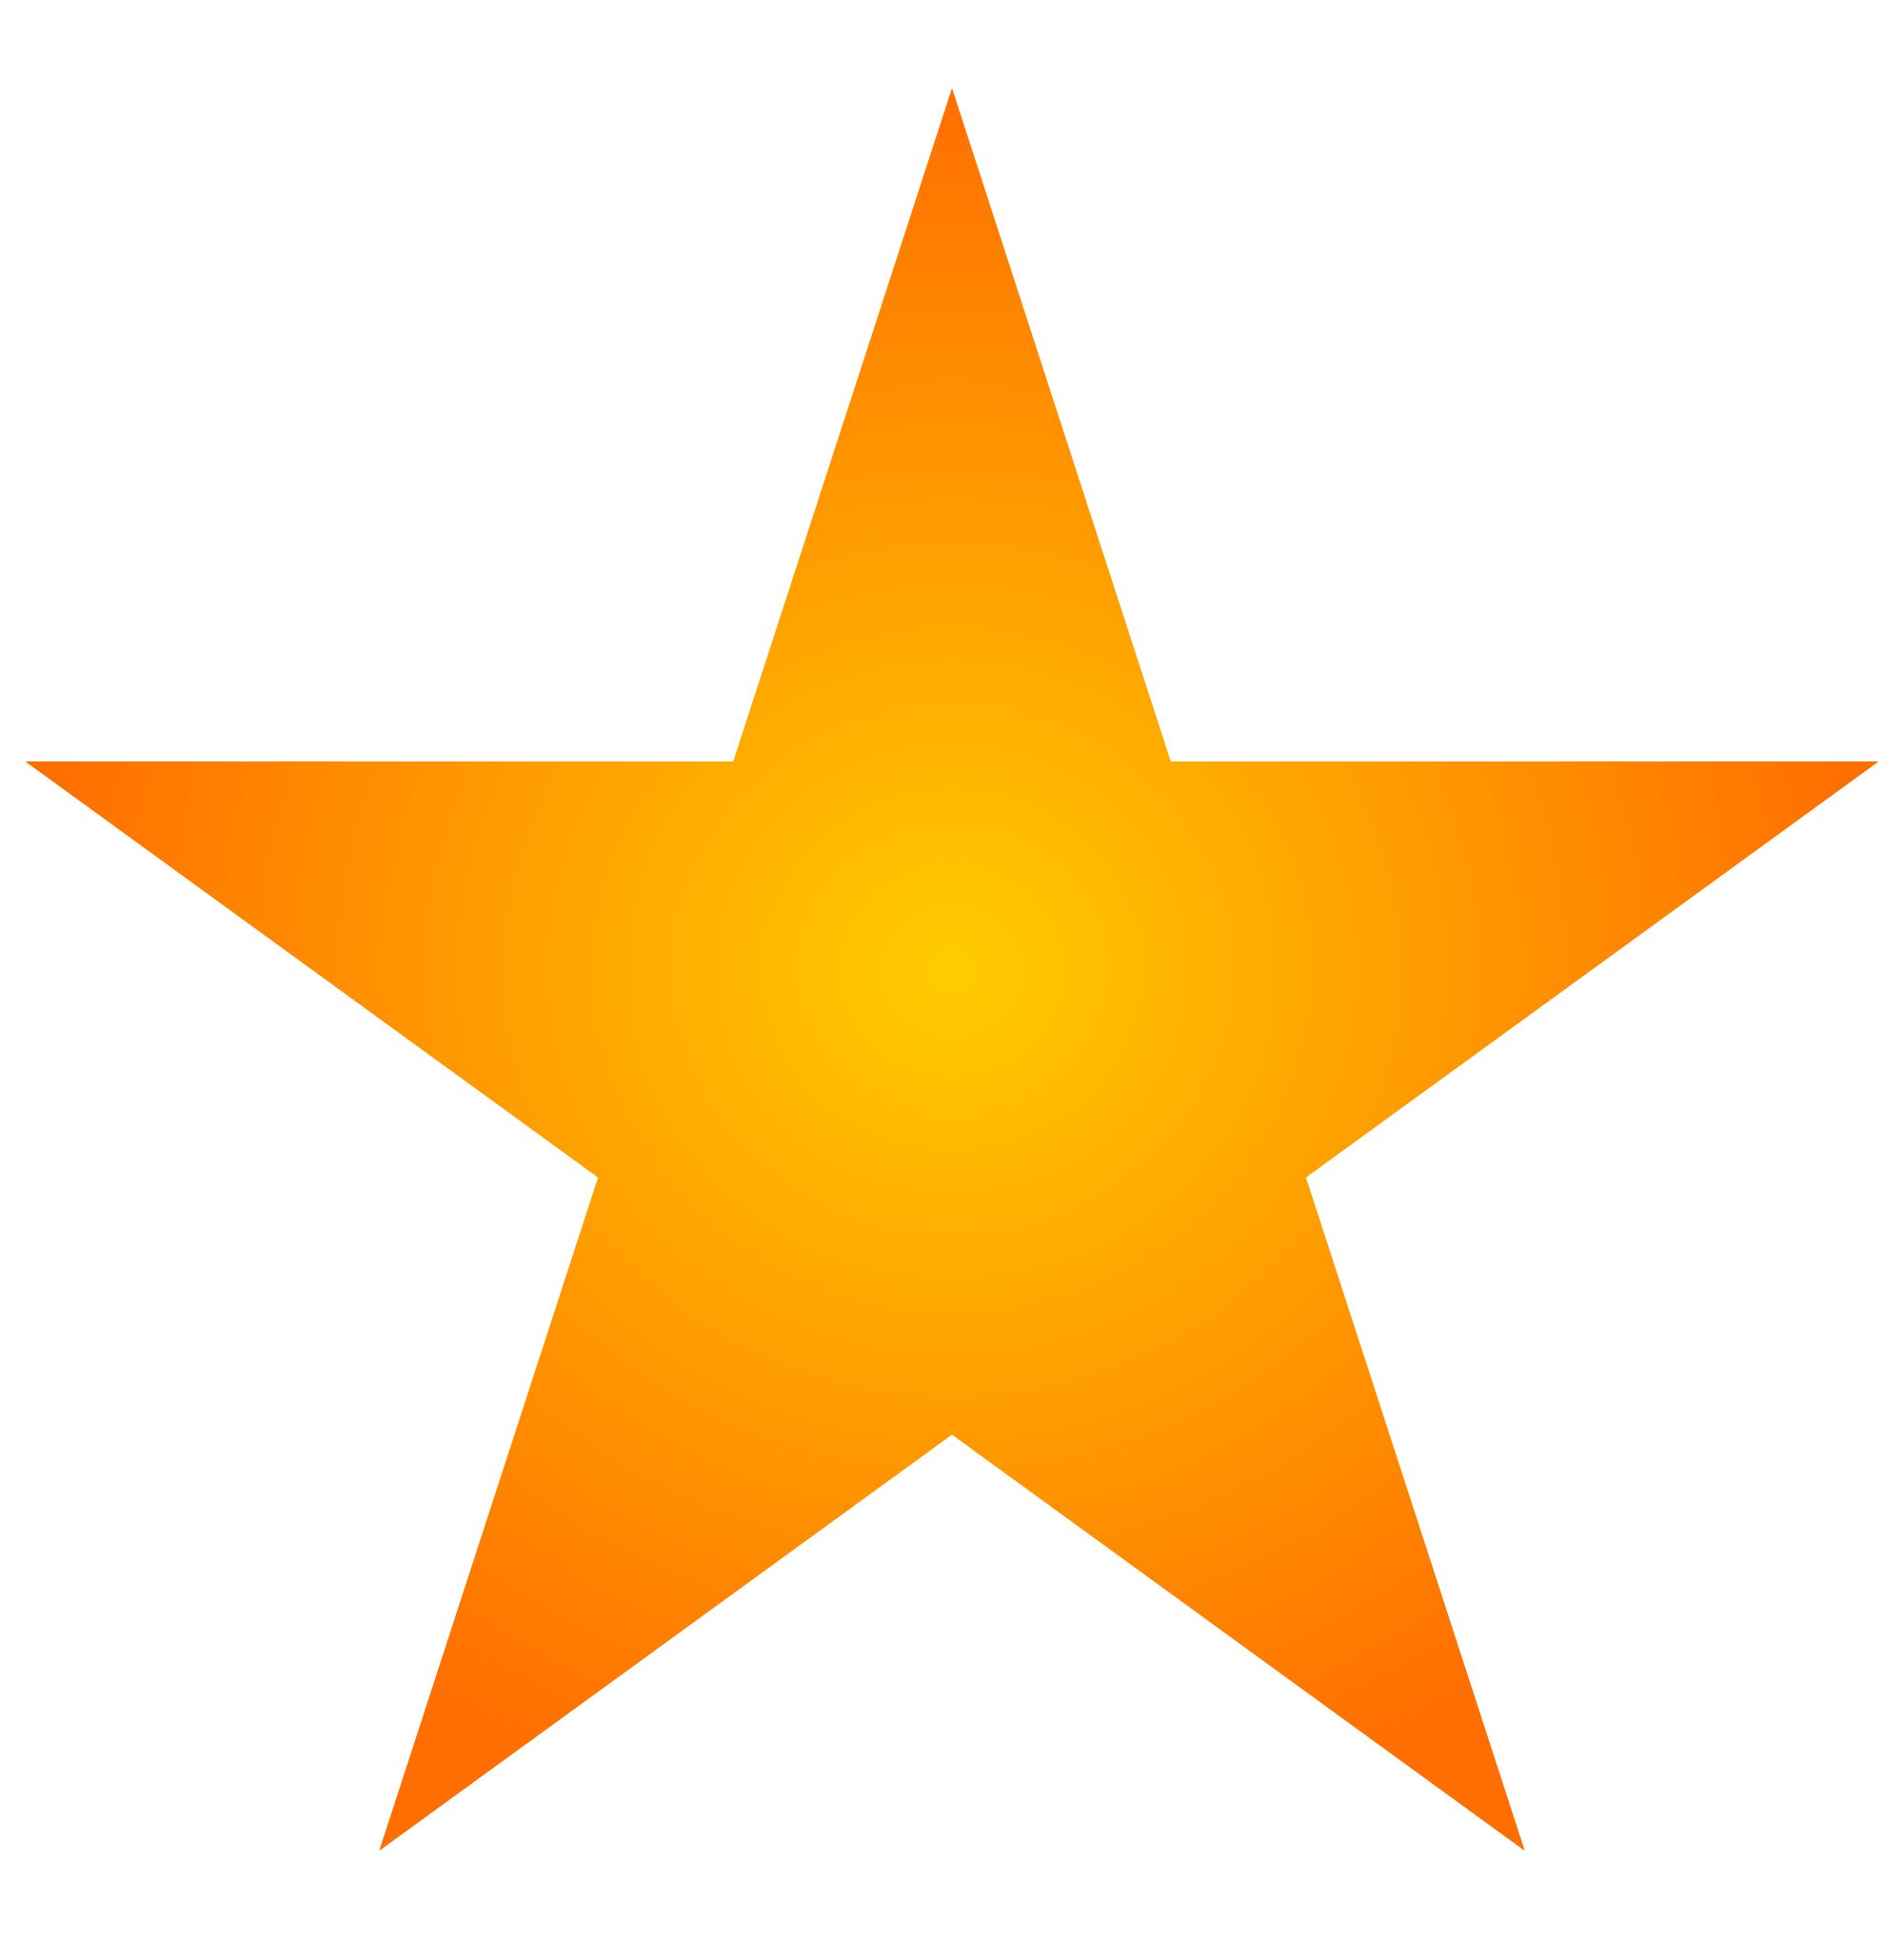 Star png. Download image free icons png black and white